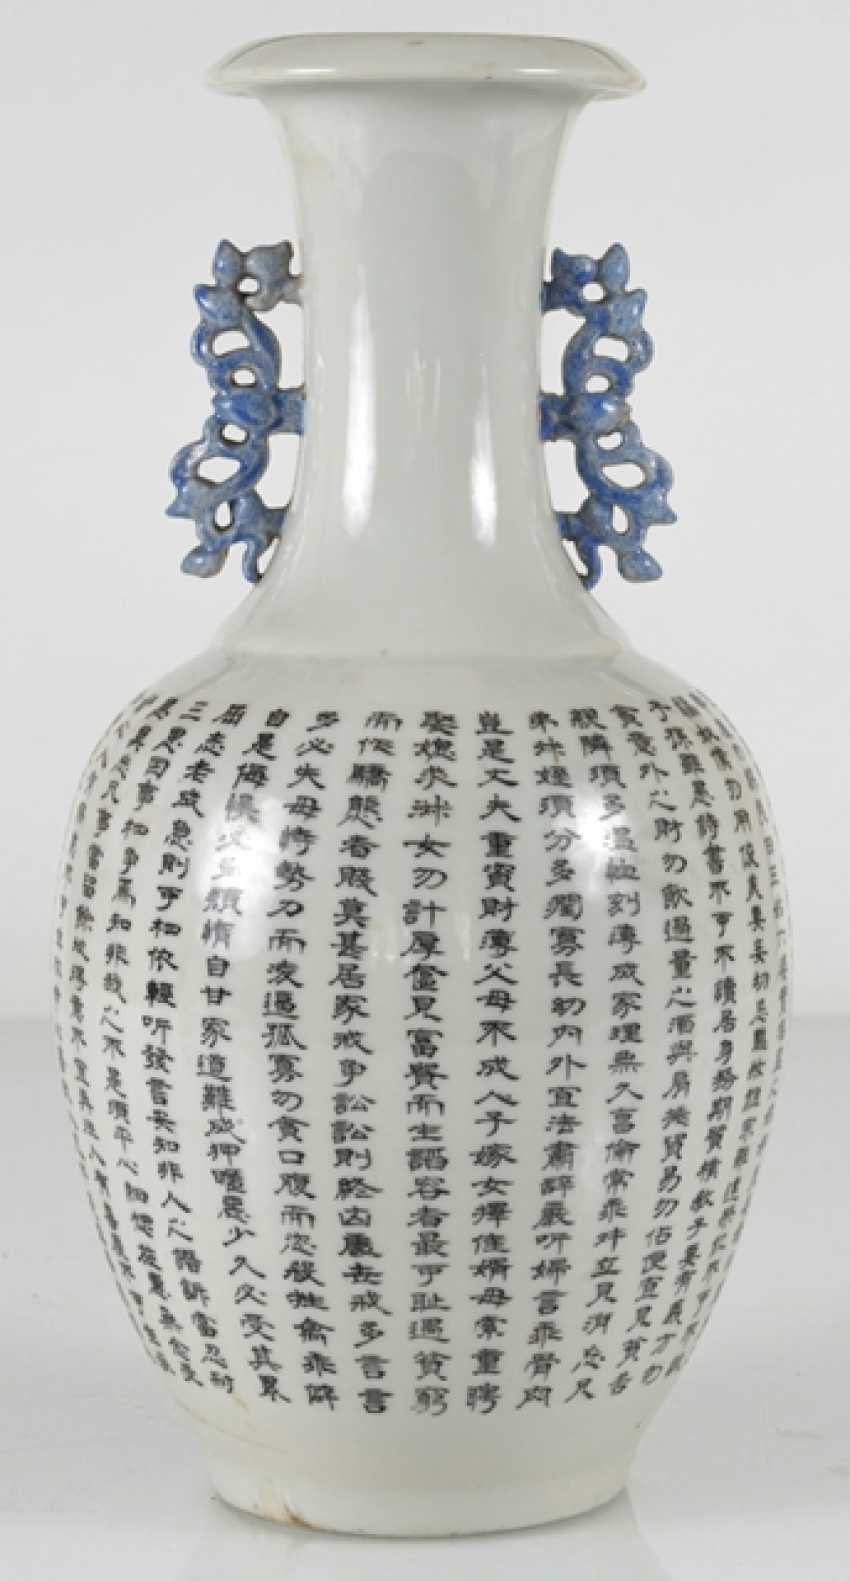 Vase made of porcelain m. taught scene, & the poem inscription in the colours of the 'Famille-rose' - photo 3